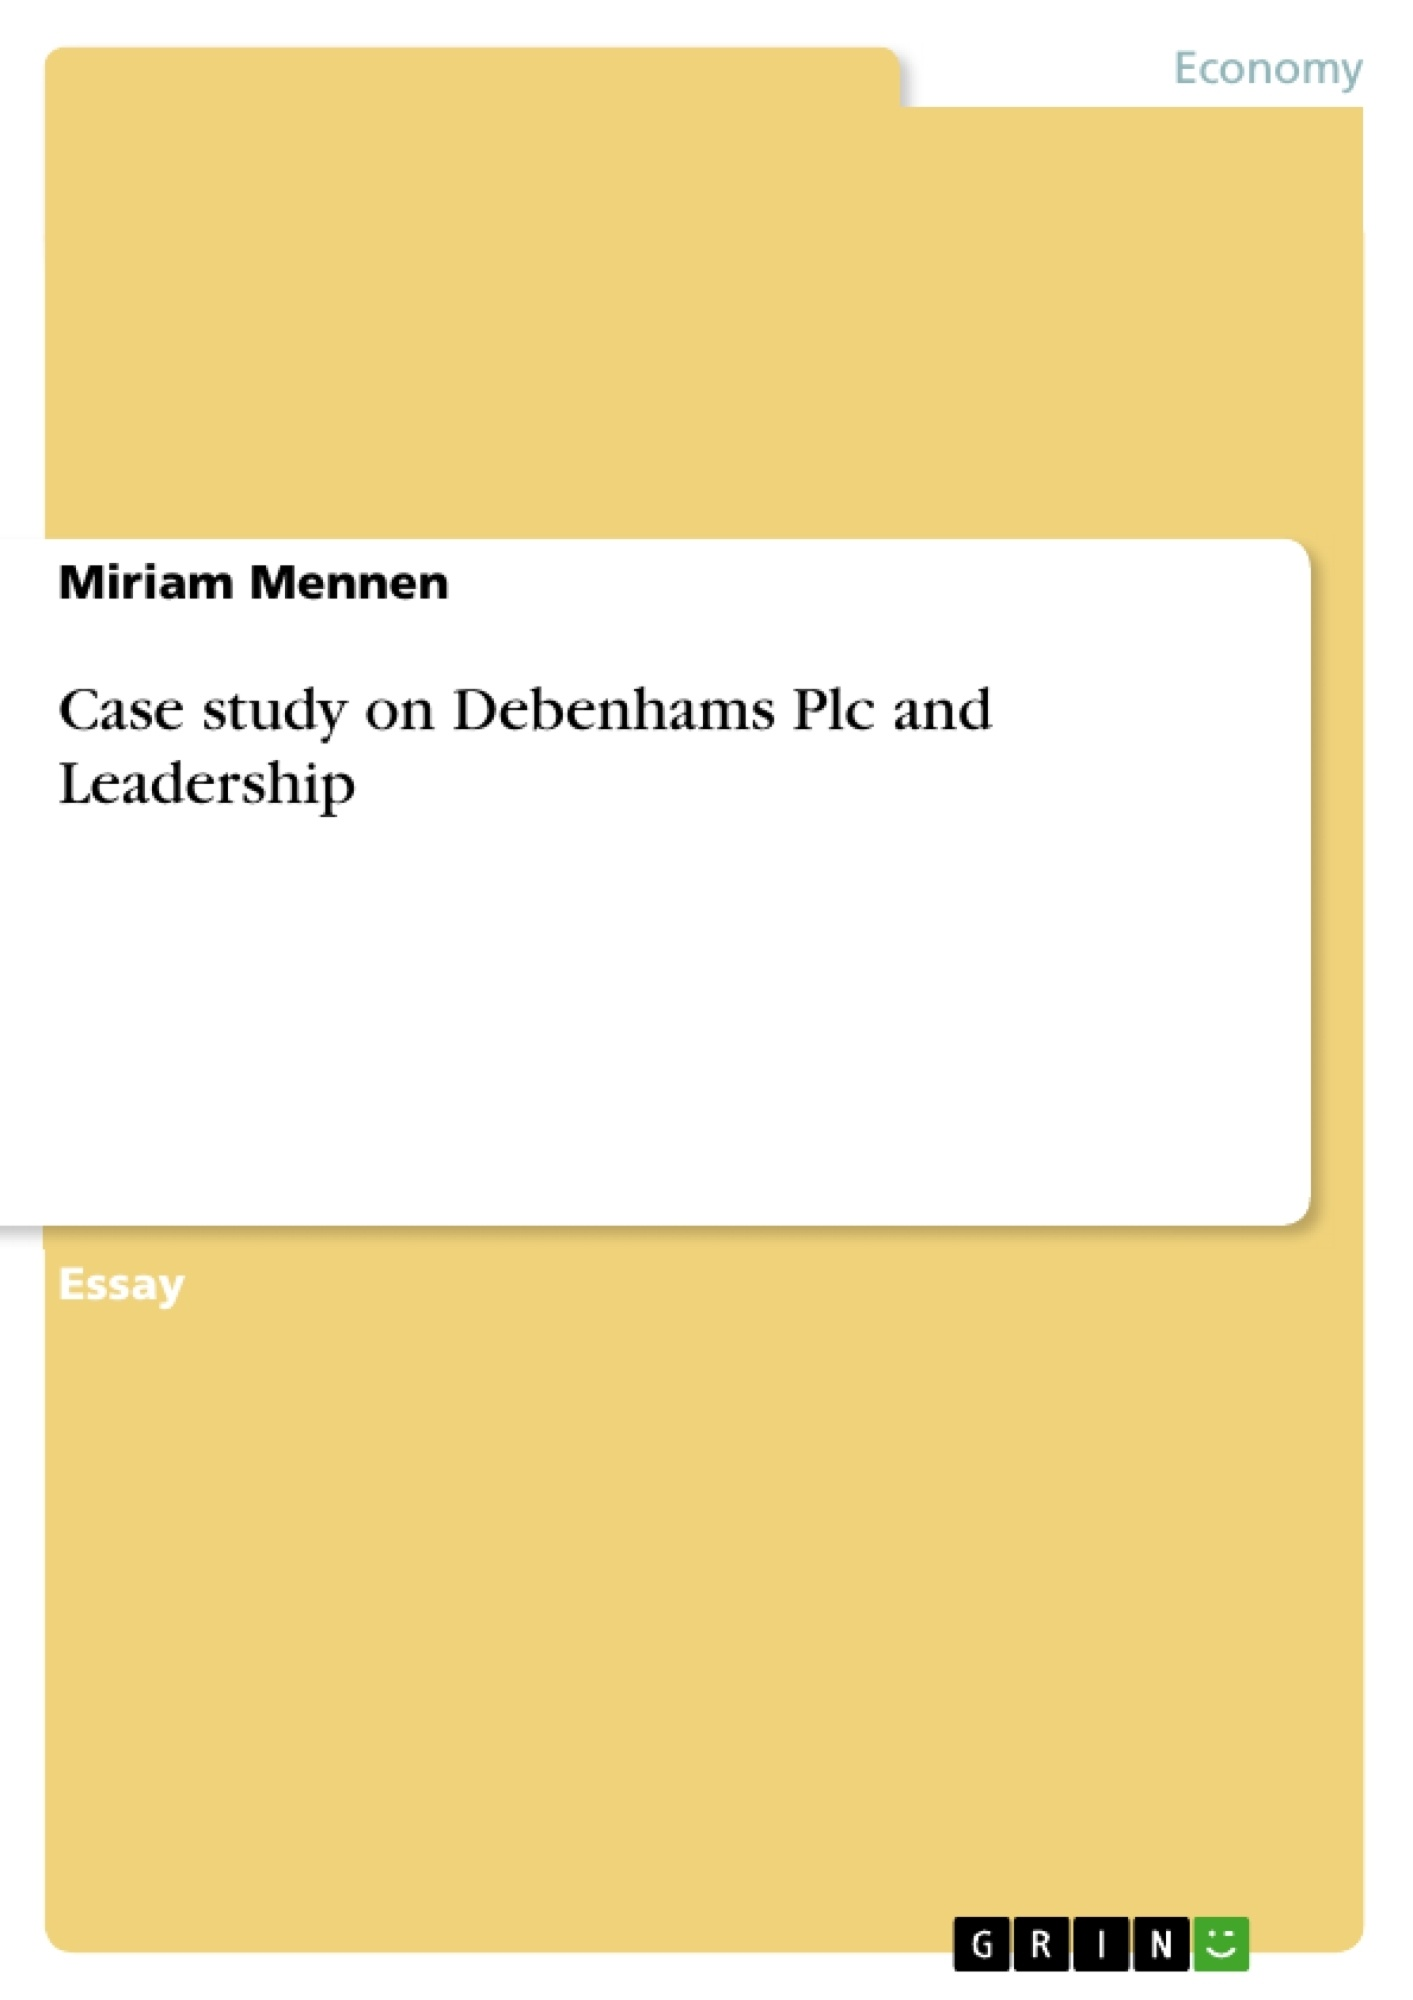 Title: Case study on Debenhams Plc and Leadership